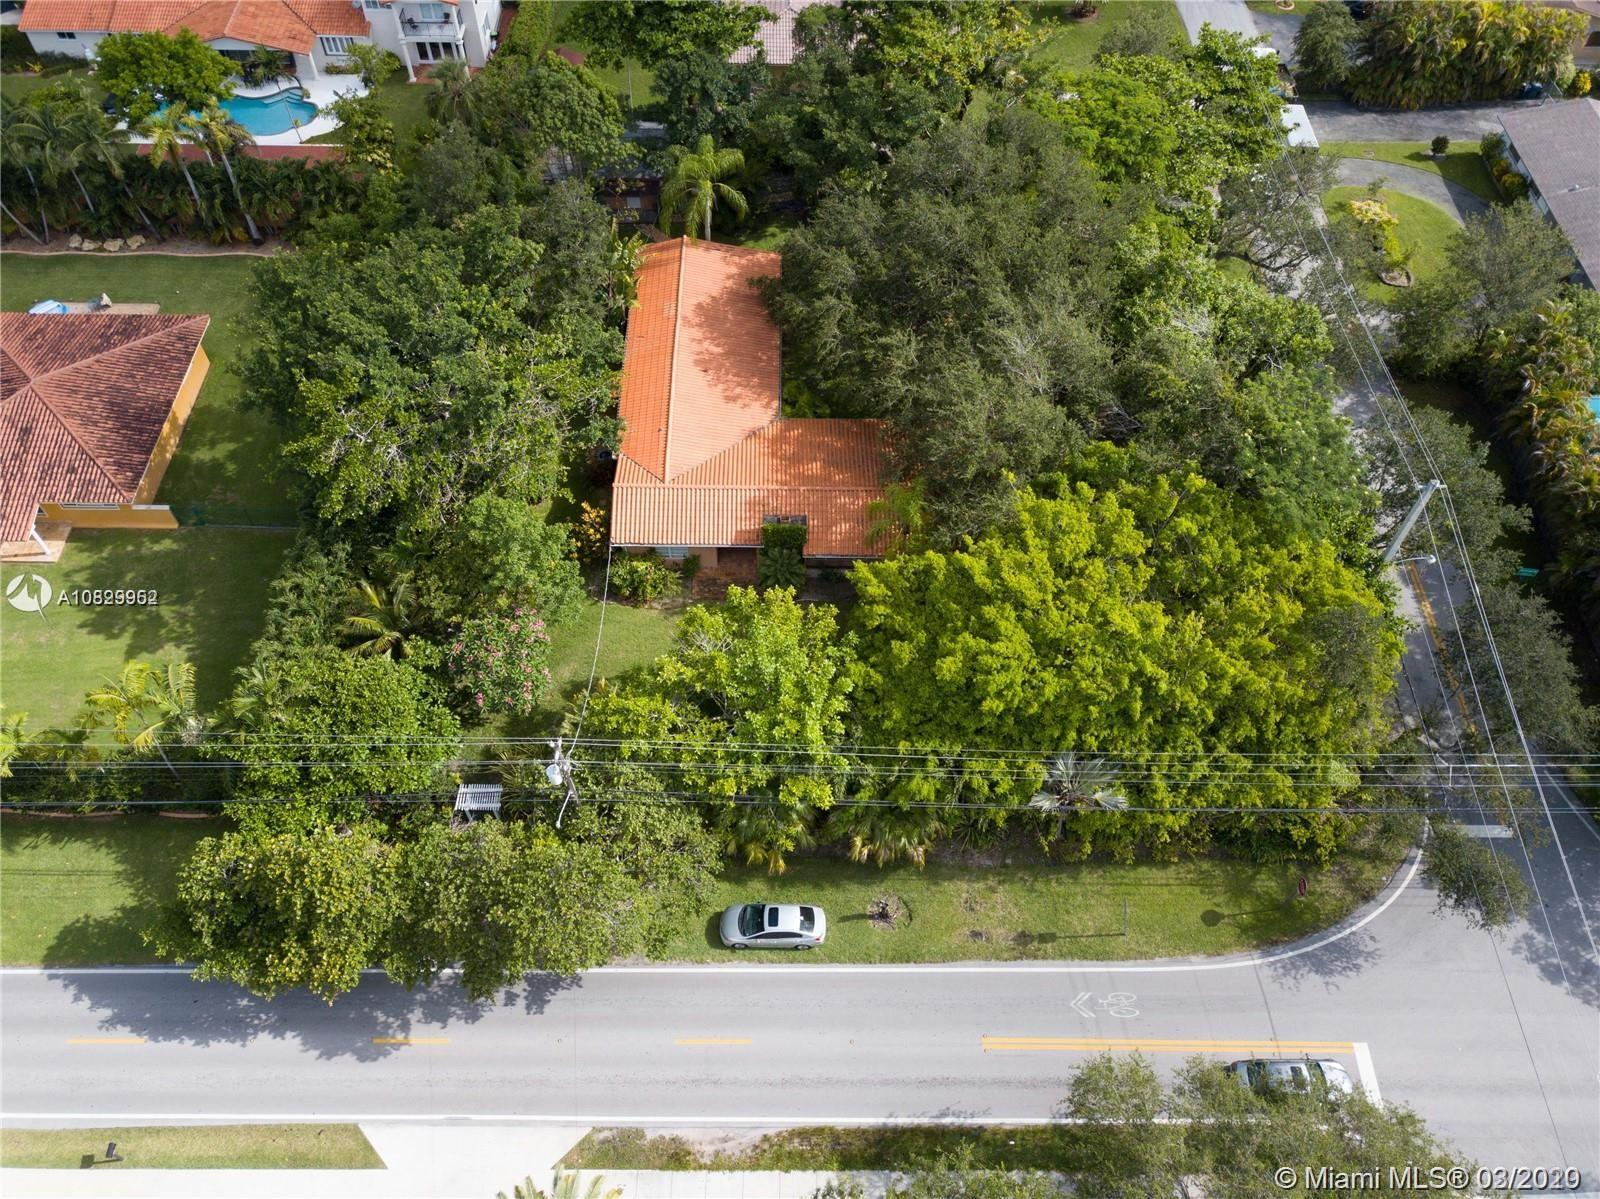 An amazing 27,056 sq ft corner lot land on 59 Ave. and 80 St. east of US1 in the beautiful City of South Miami. Ideal for an investment large enough to build two homes or to build your dream home. Close to lots of what the area has to offer including great schools, hospitals, entertainment, outdoor activities, and shopping. Being on a corner gives you the option to make the main entrance of the property either on SW 80th St. or 59th Ave. There is an existing house now in great condition. Rare opportunity for this size lot in a lovely part of South Miami. Currently rented until March 2021. Please do not disturb tenants.